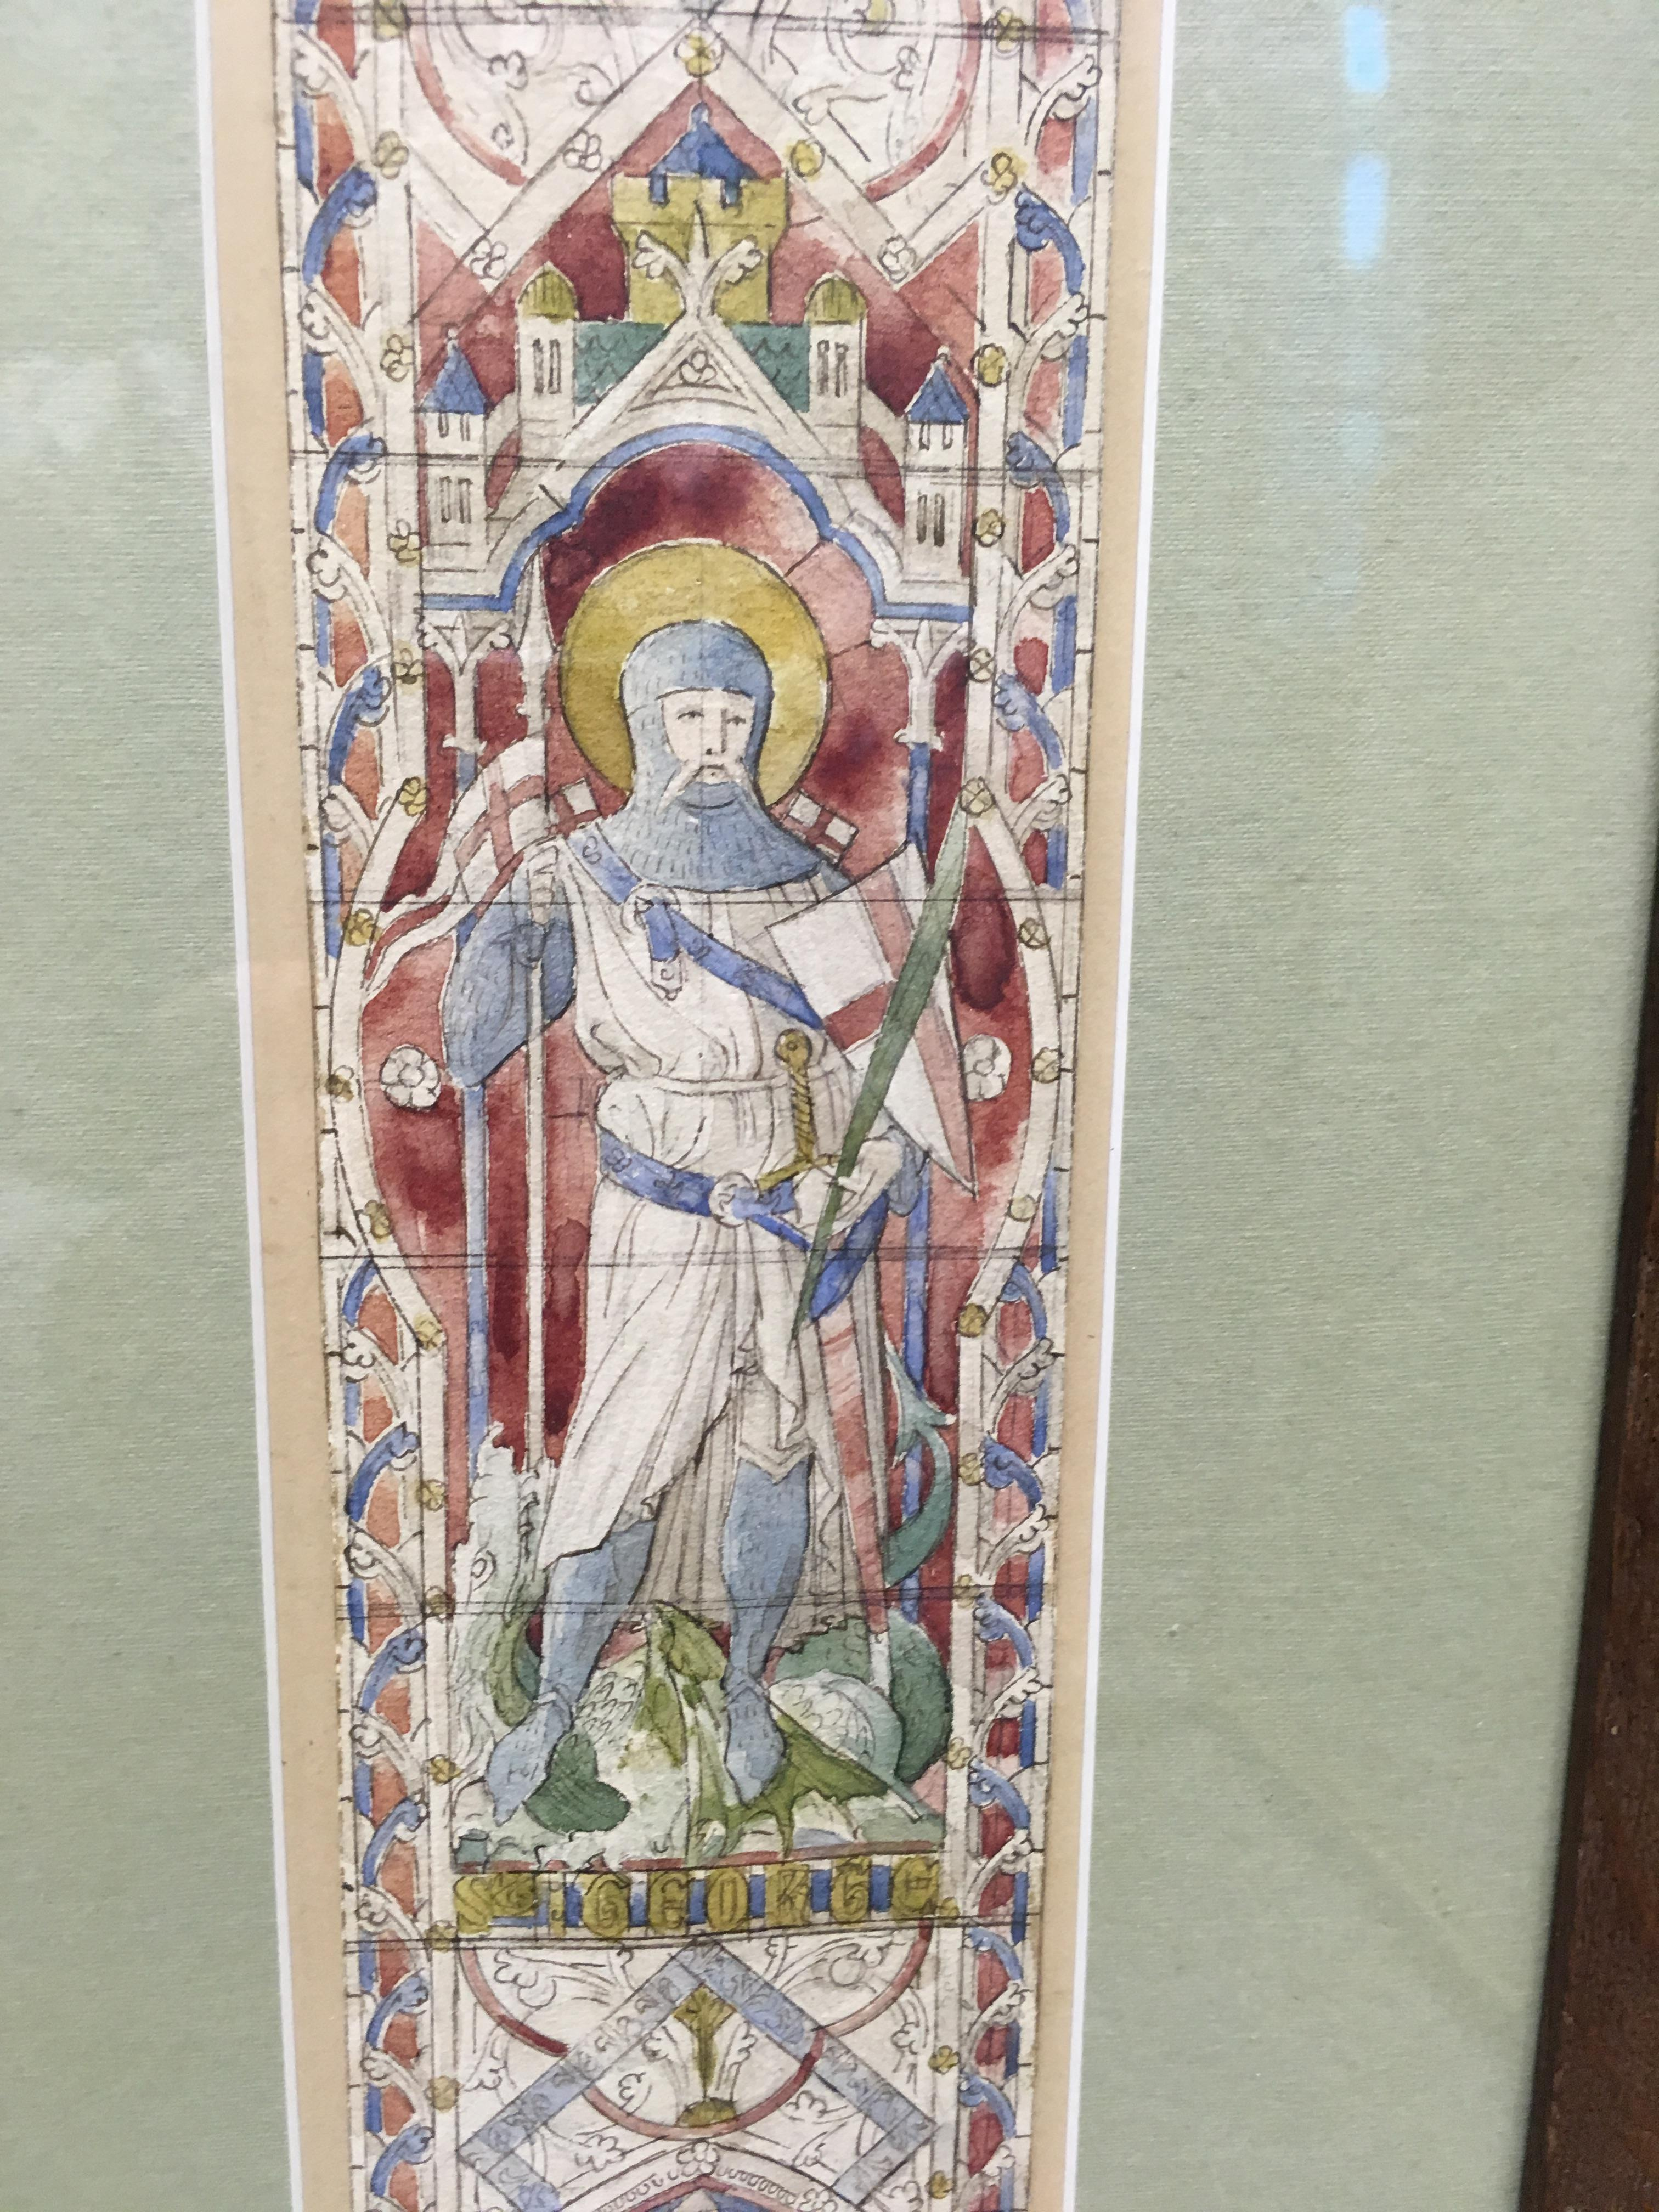 Lot 113 - ENGLISH SCHOOL (19th CENTURY) A STAINED GLASS WINDOW DESIGN FEATURING THE LIFE OF ST GEORGE pen, ink